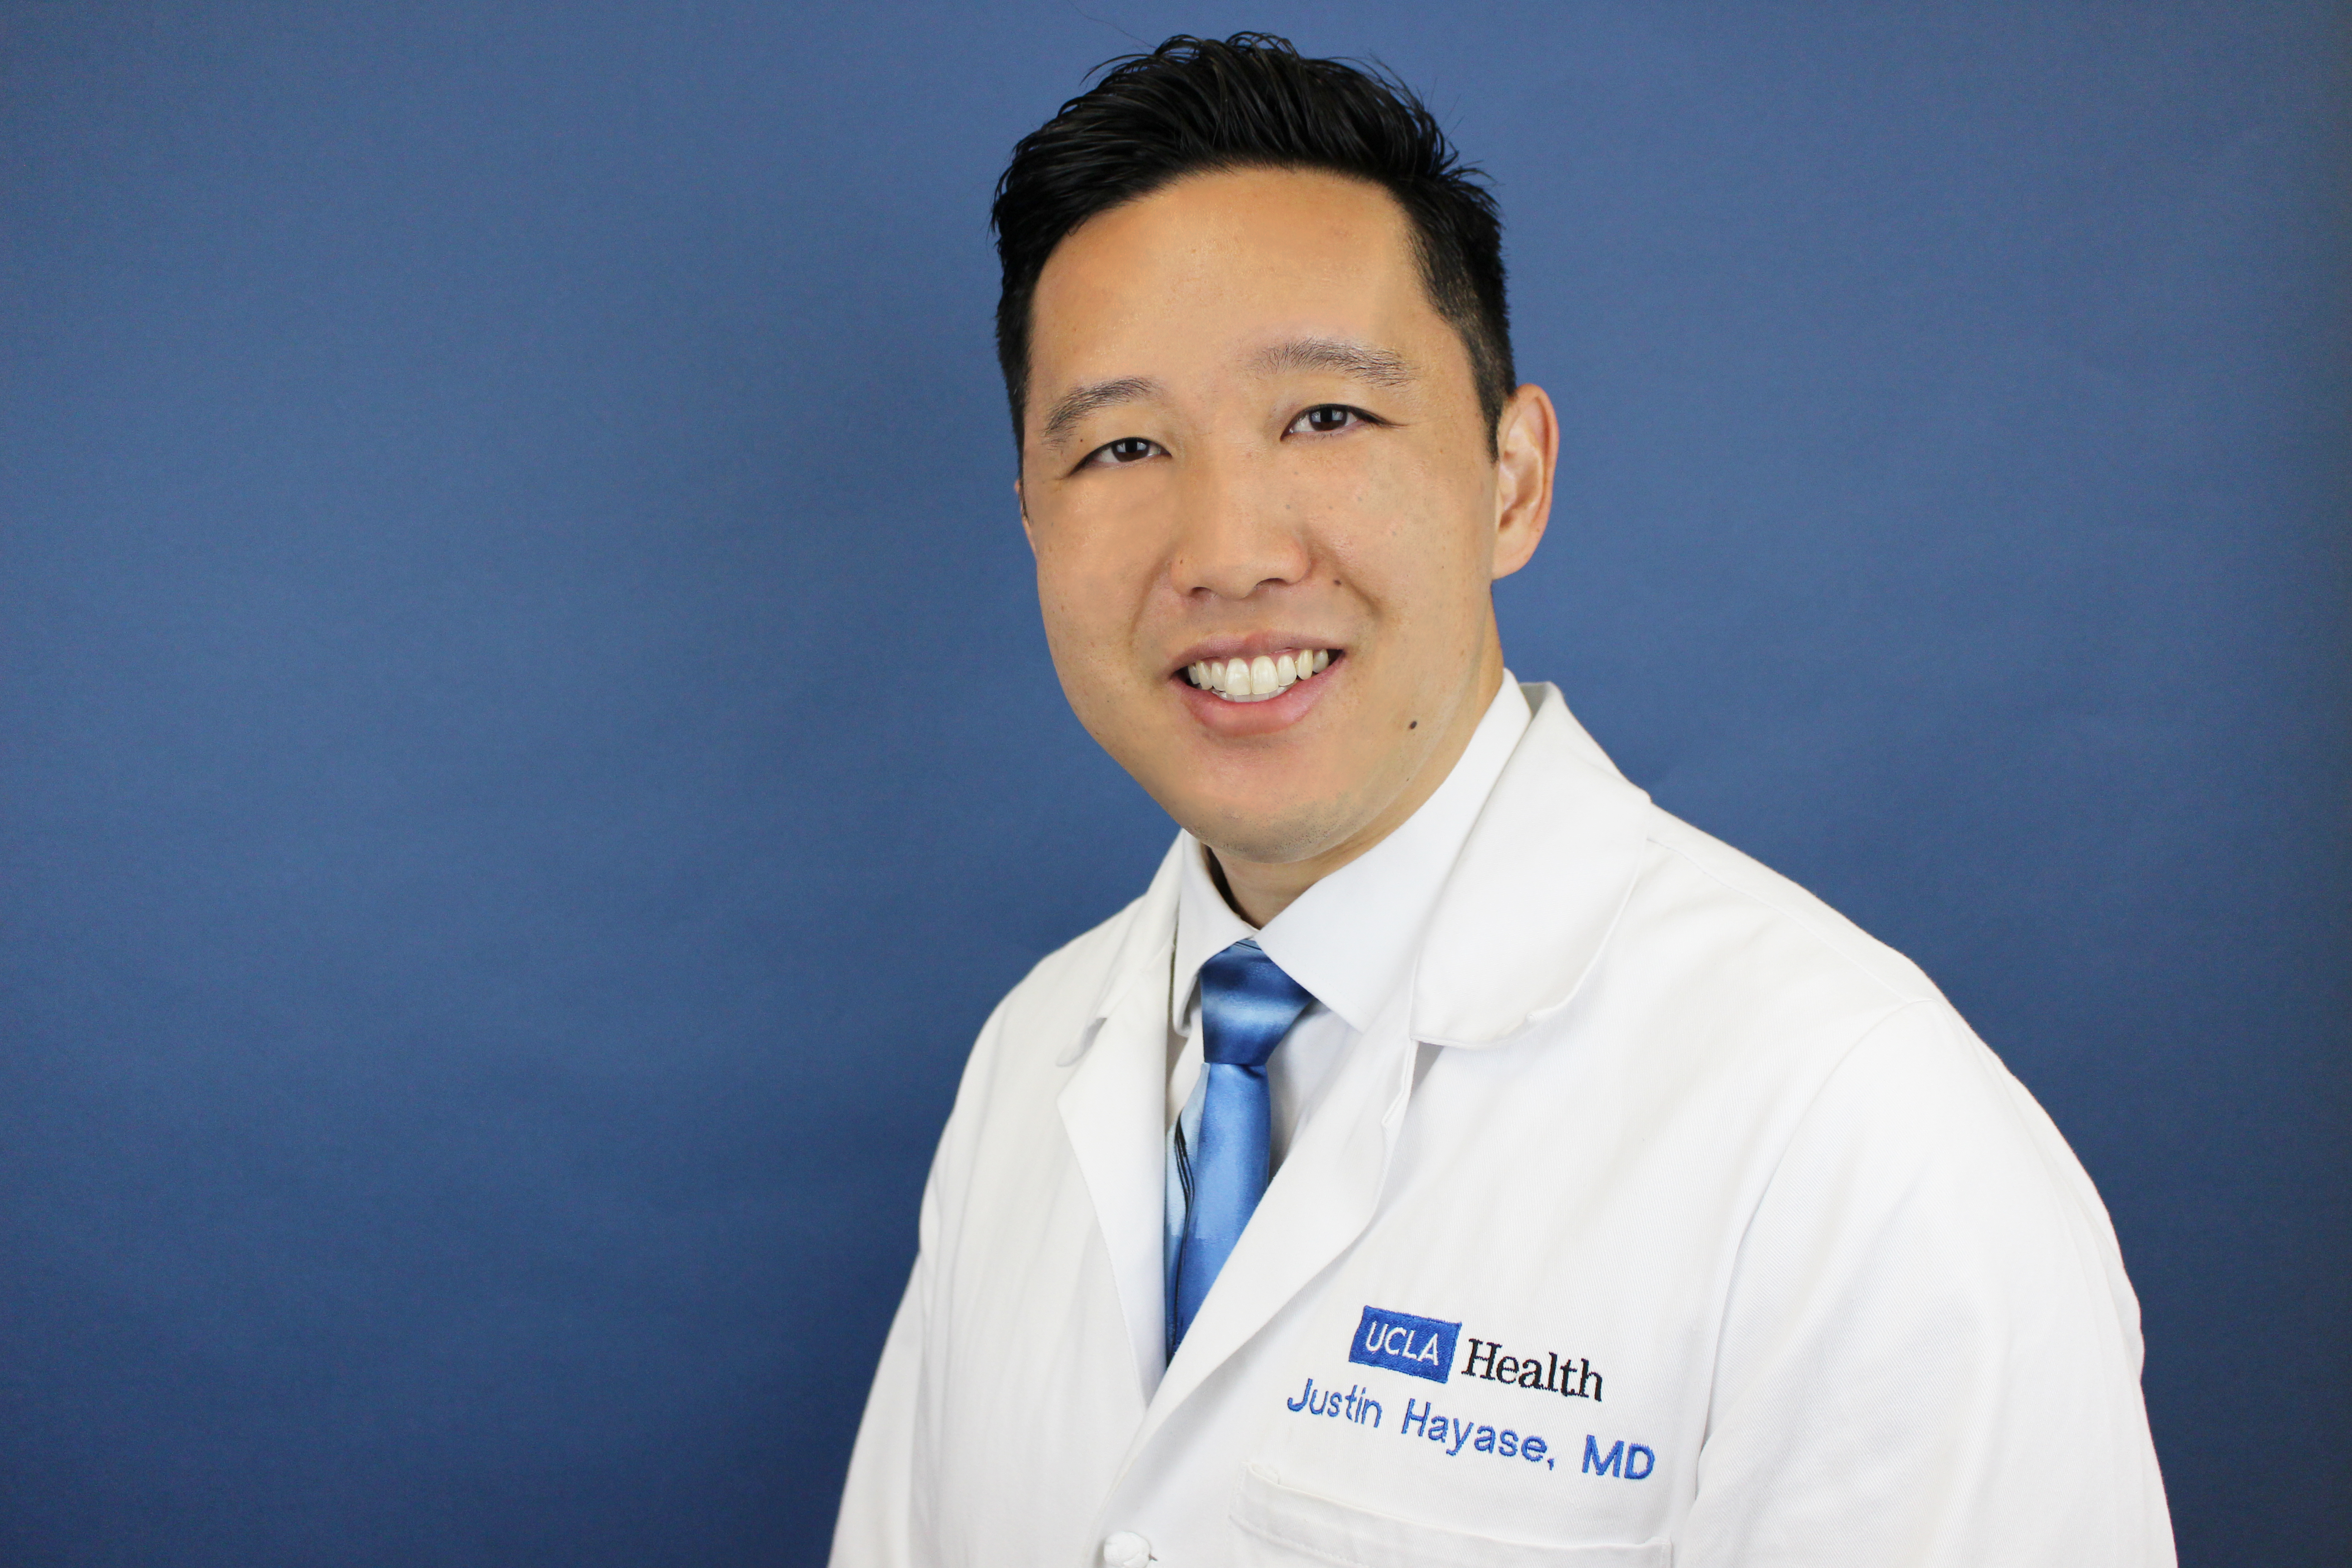 Current Fellows - UCLA Heart and Vascular Services - Los Angeles, CA